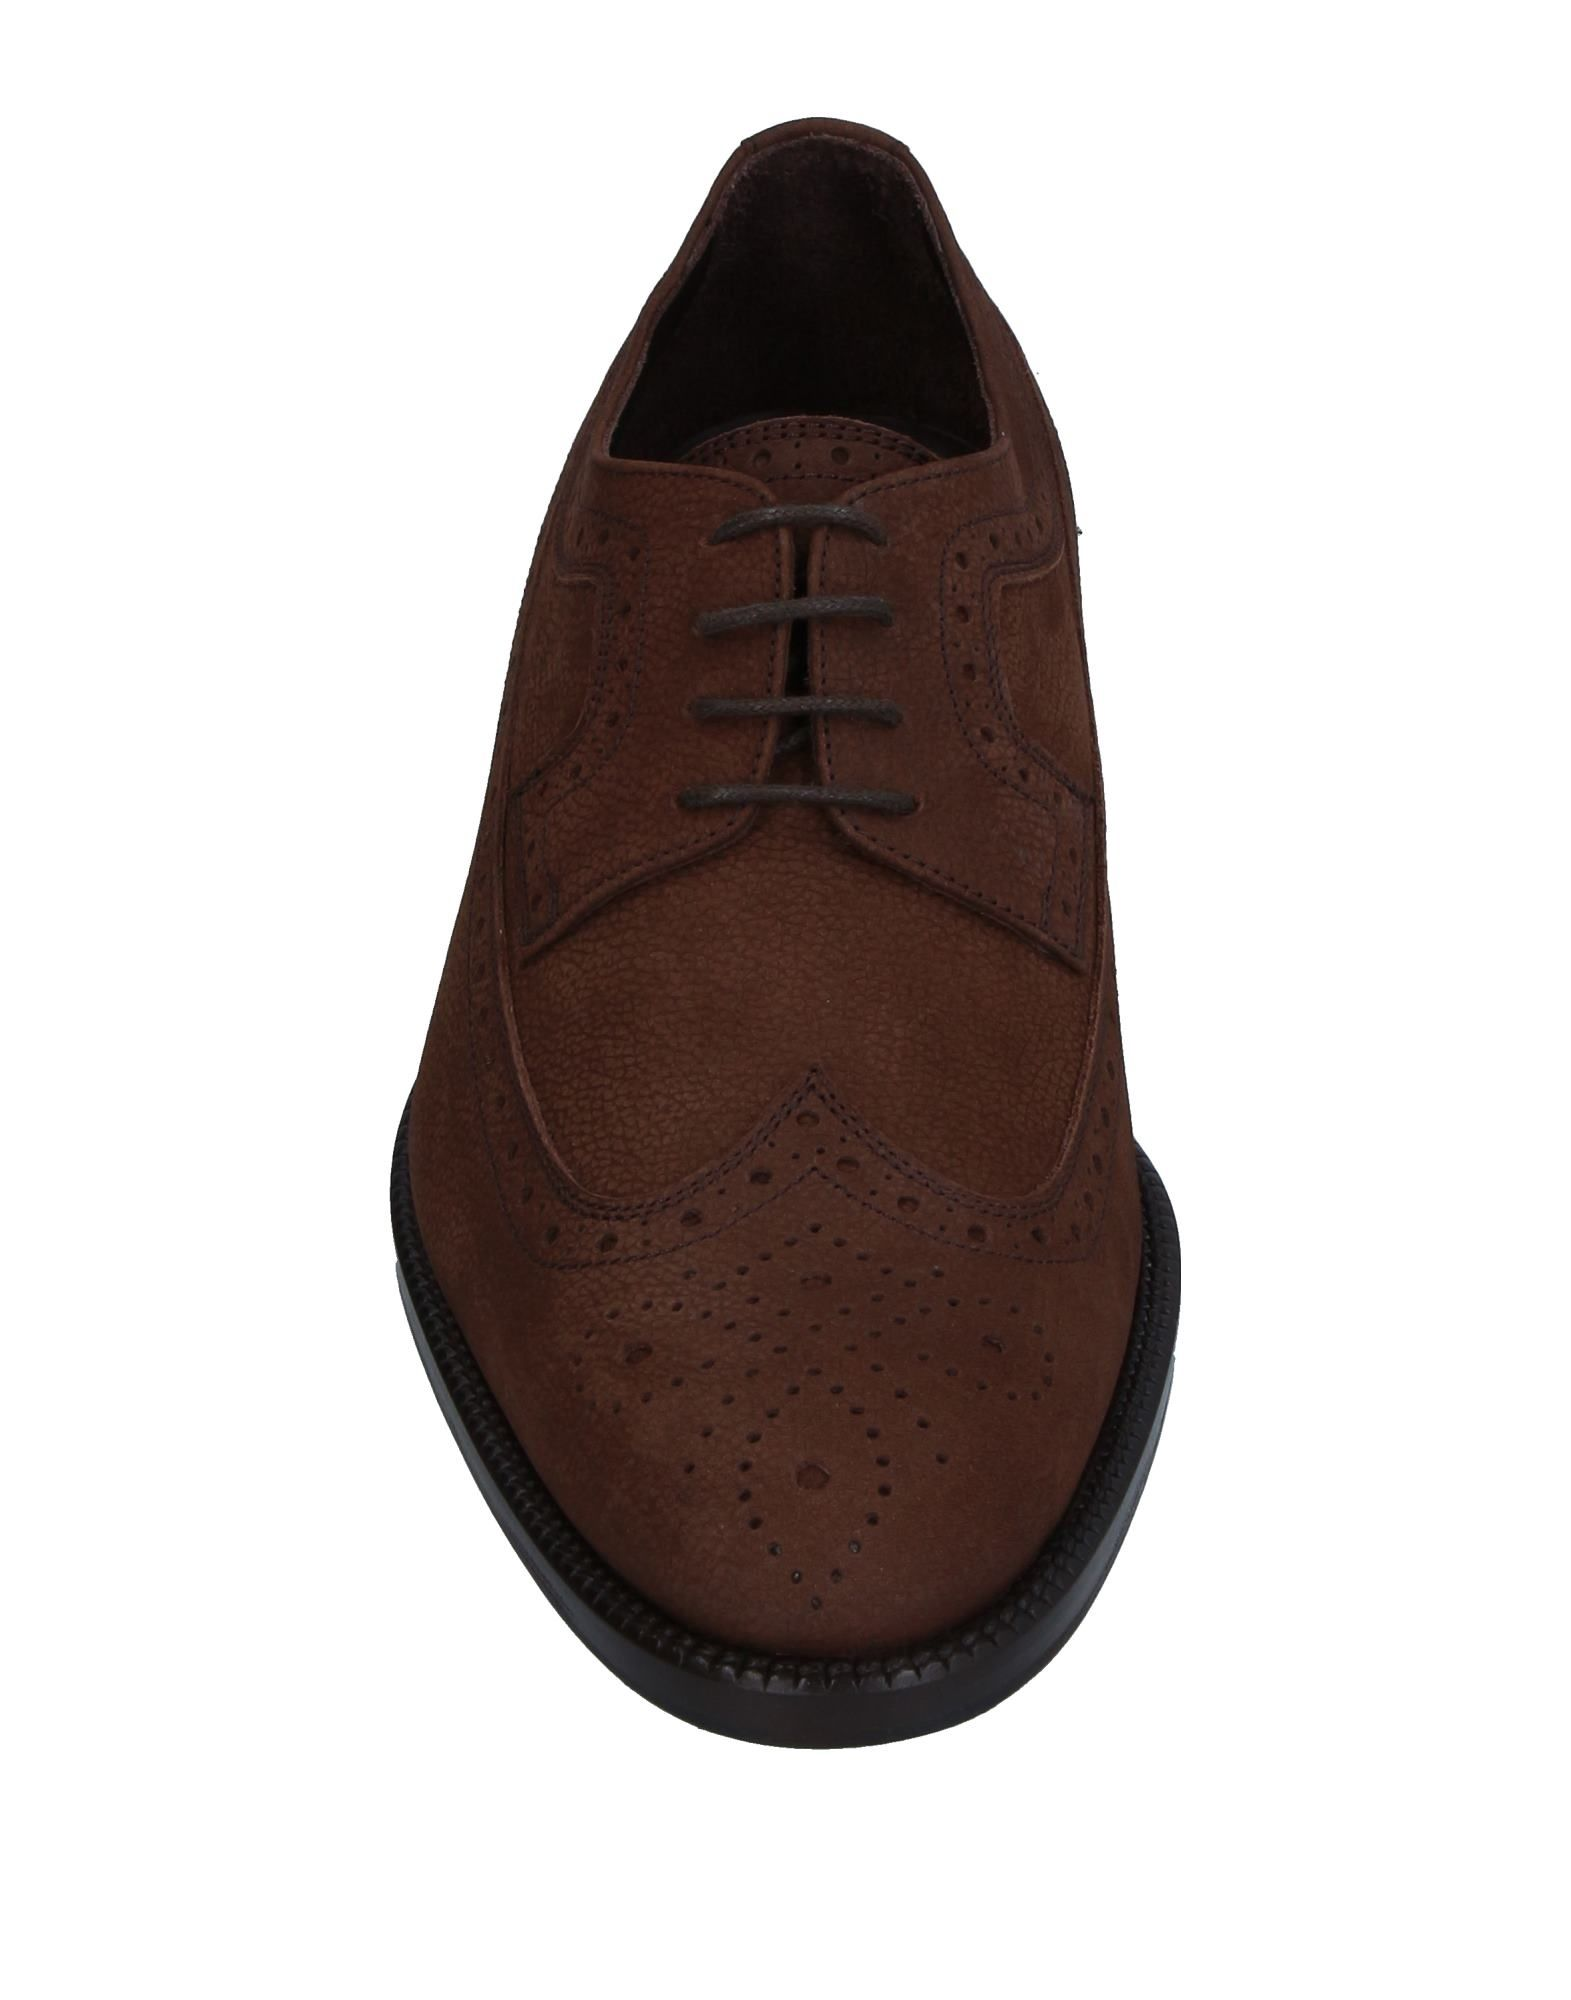 Chaussures À Lacets Bruno Magli Homme - Chaussures À Lacets Bruno Magli sur